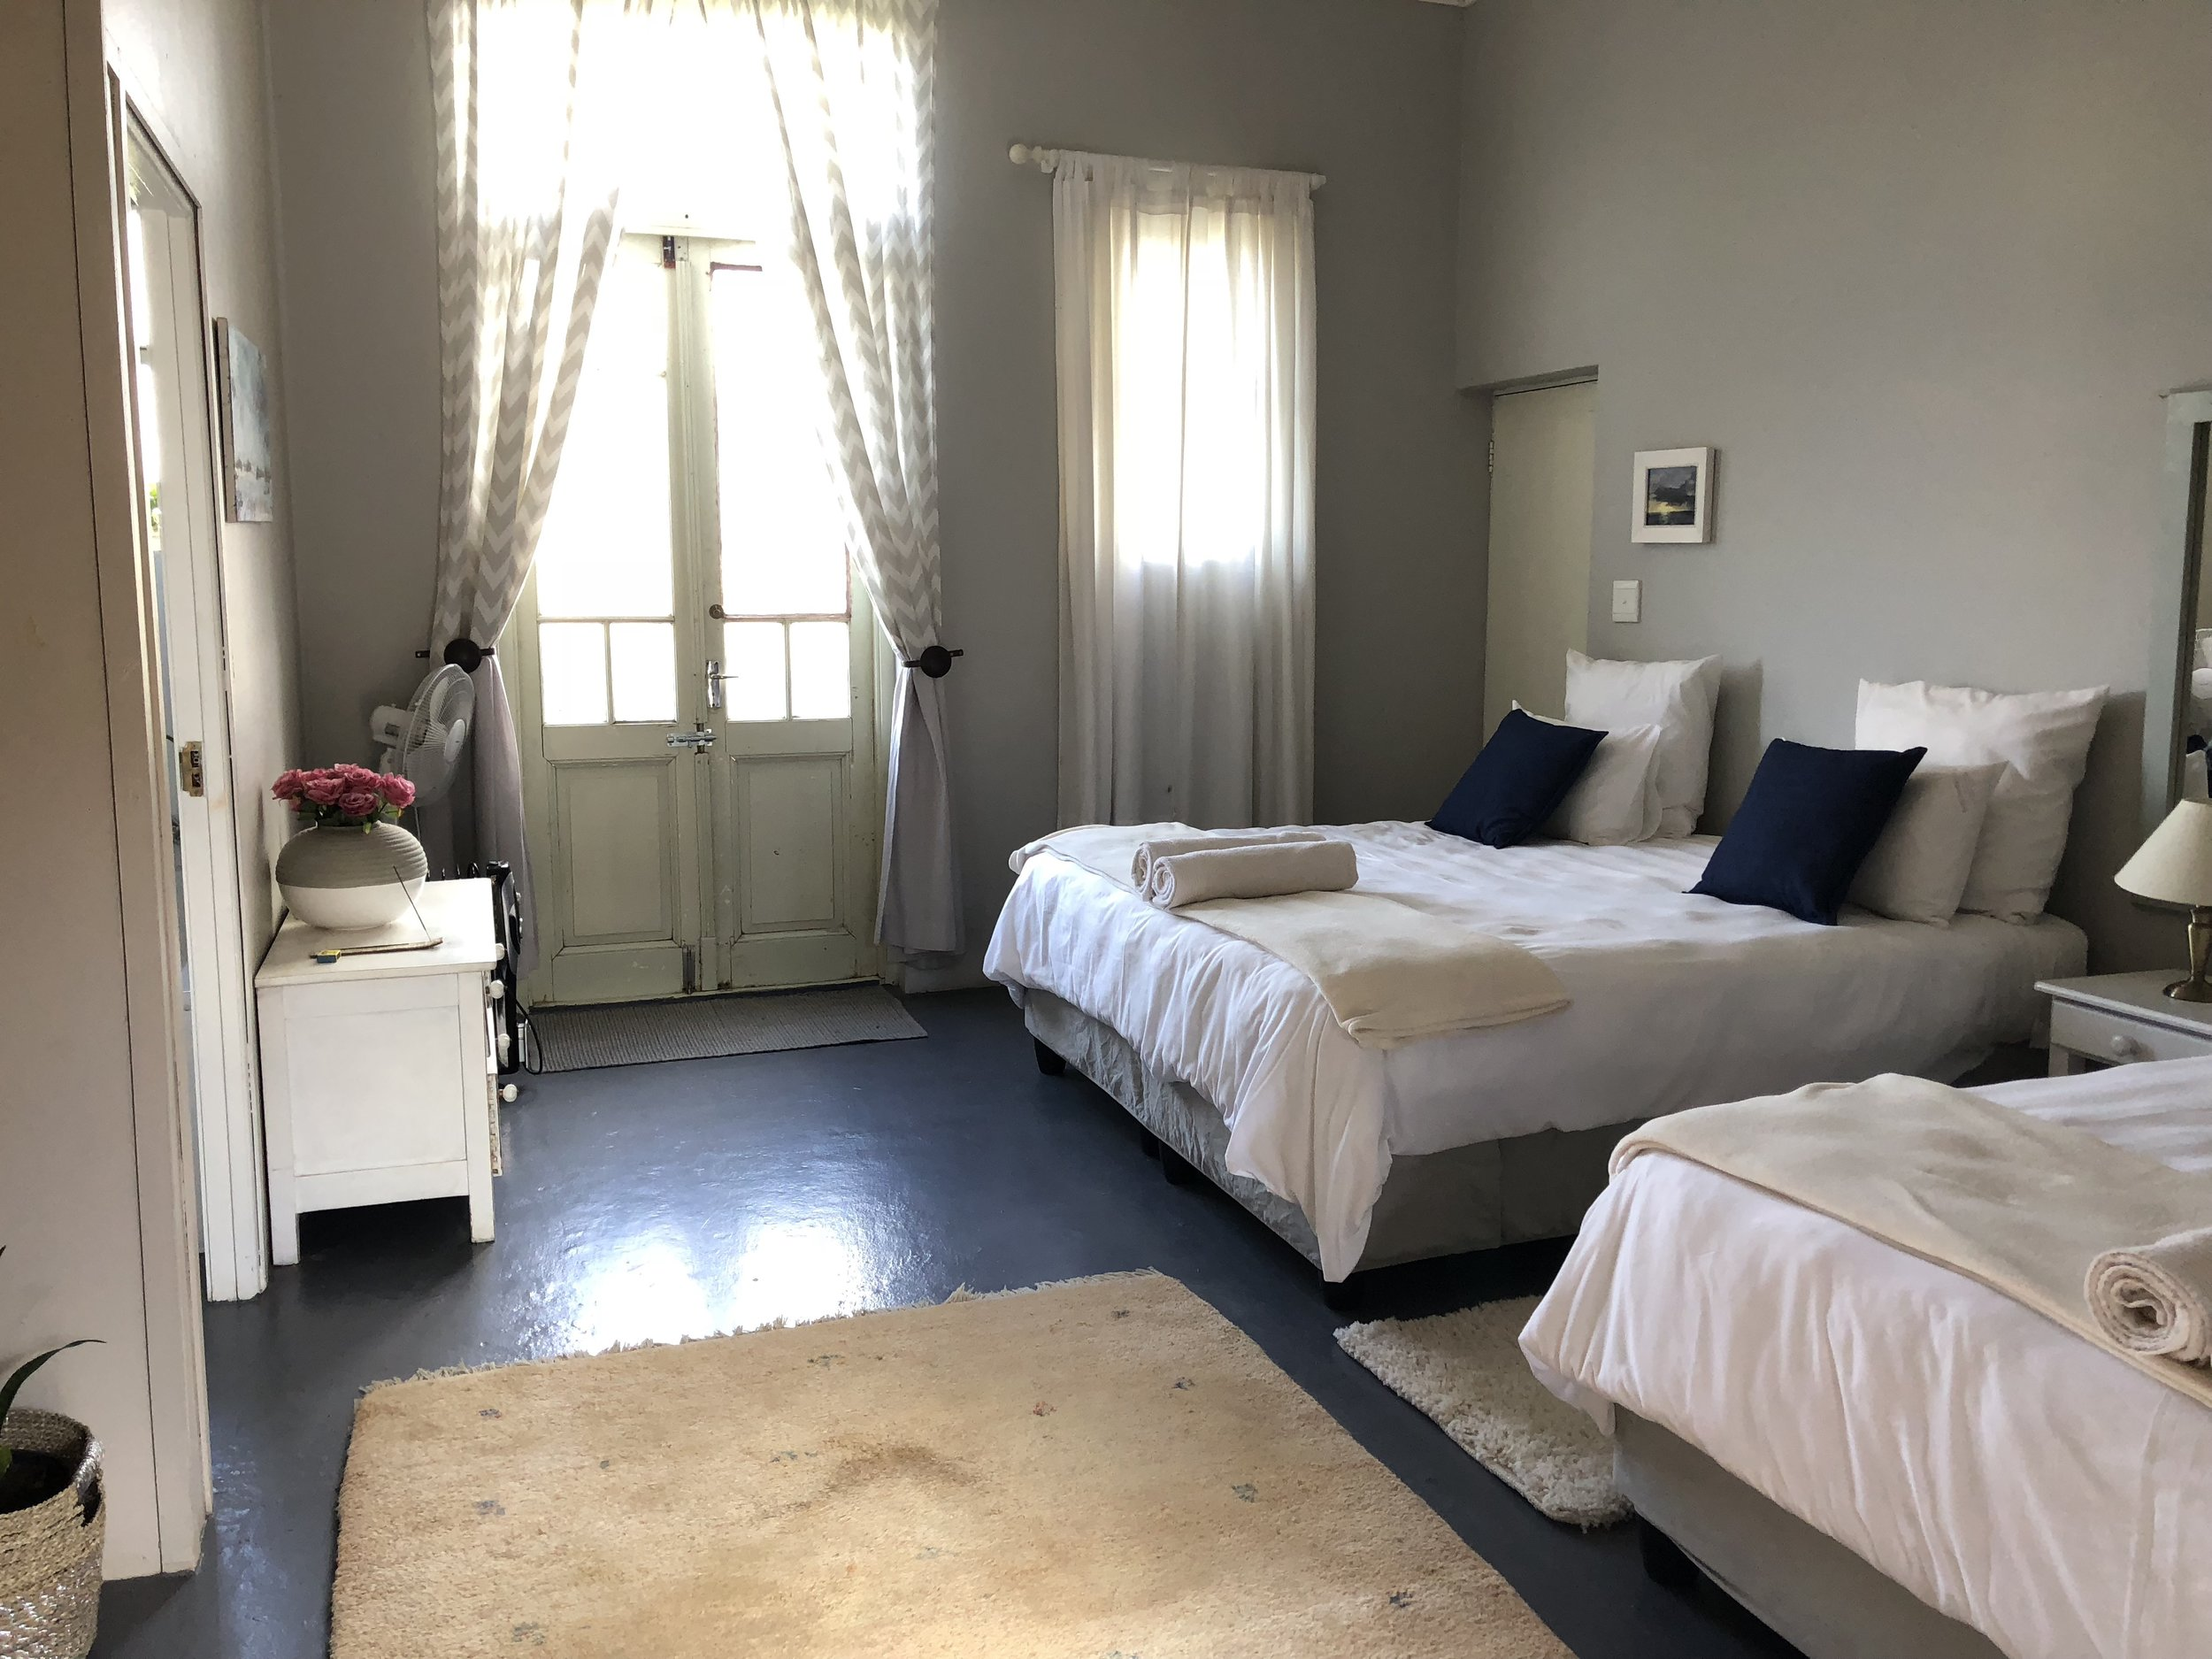 SHARED ROOM - 3 DOUBLE BEDS W/ PRIVATE BATH Enjoy this spacious and comfortable triple shared option Features: Ensuite Bathroom, 3 Double Beds